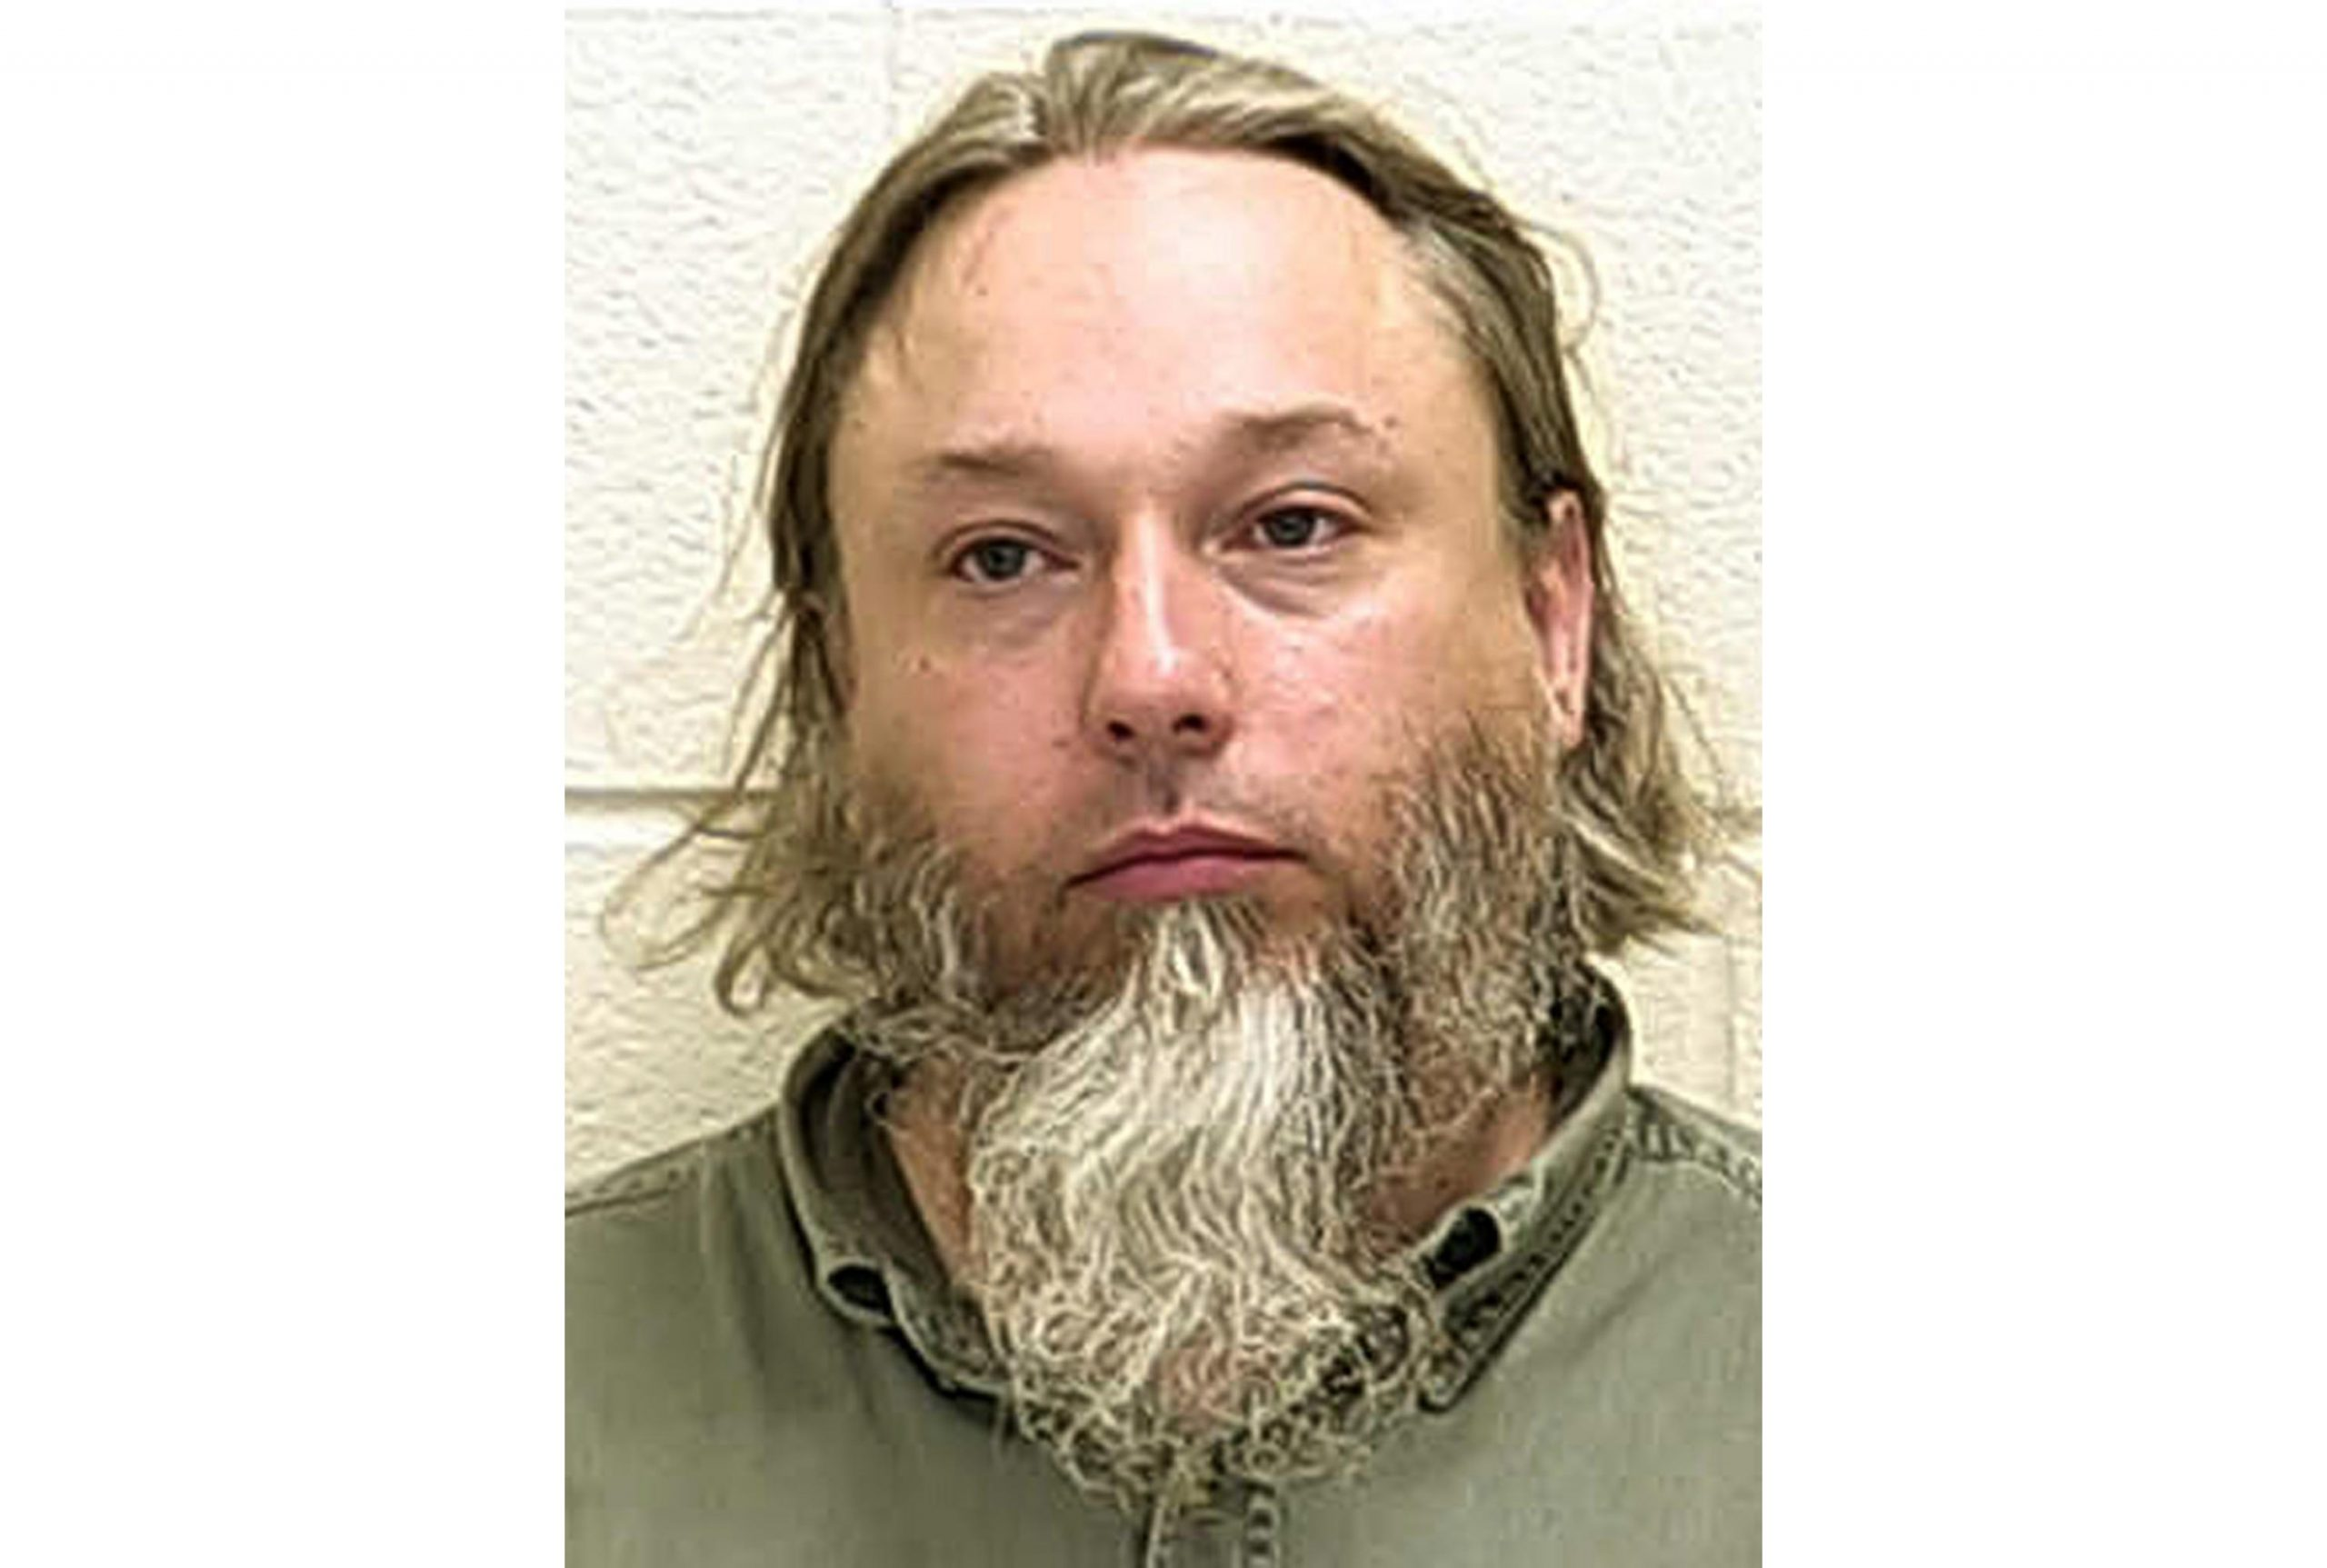 Militia leader to be sentenced in Minnesota mosque bombing